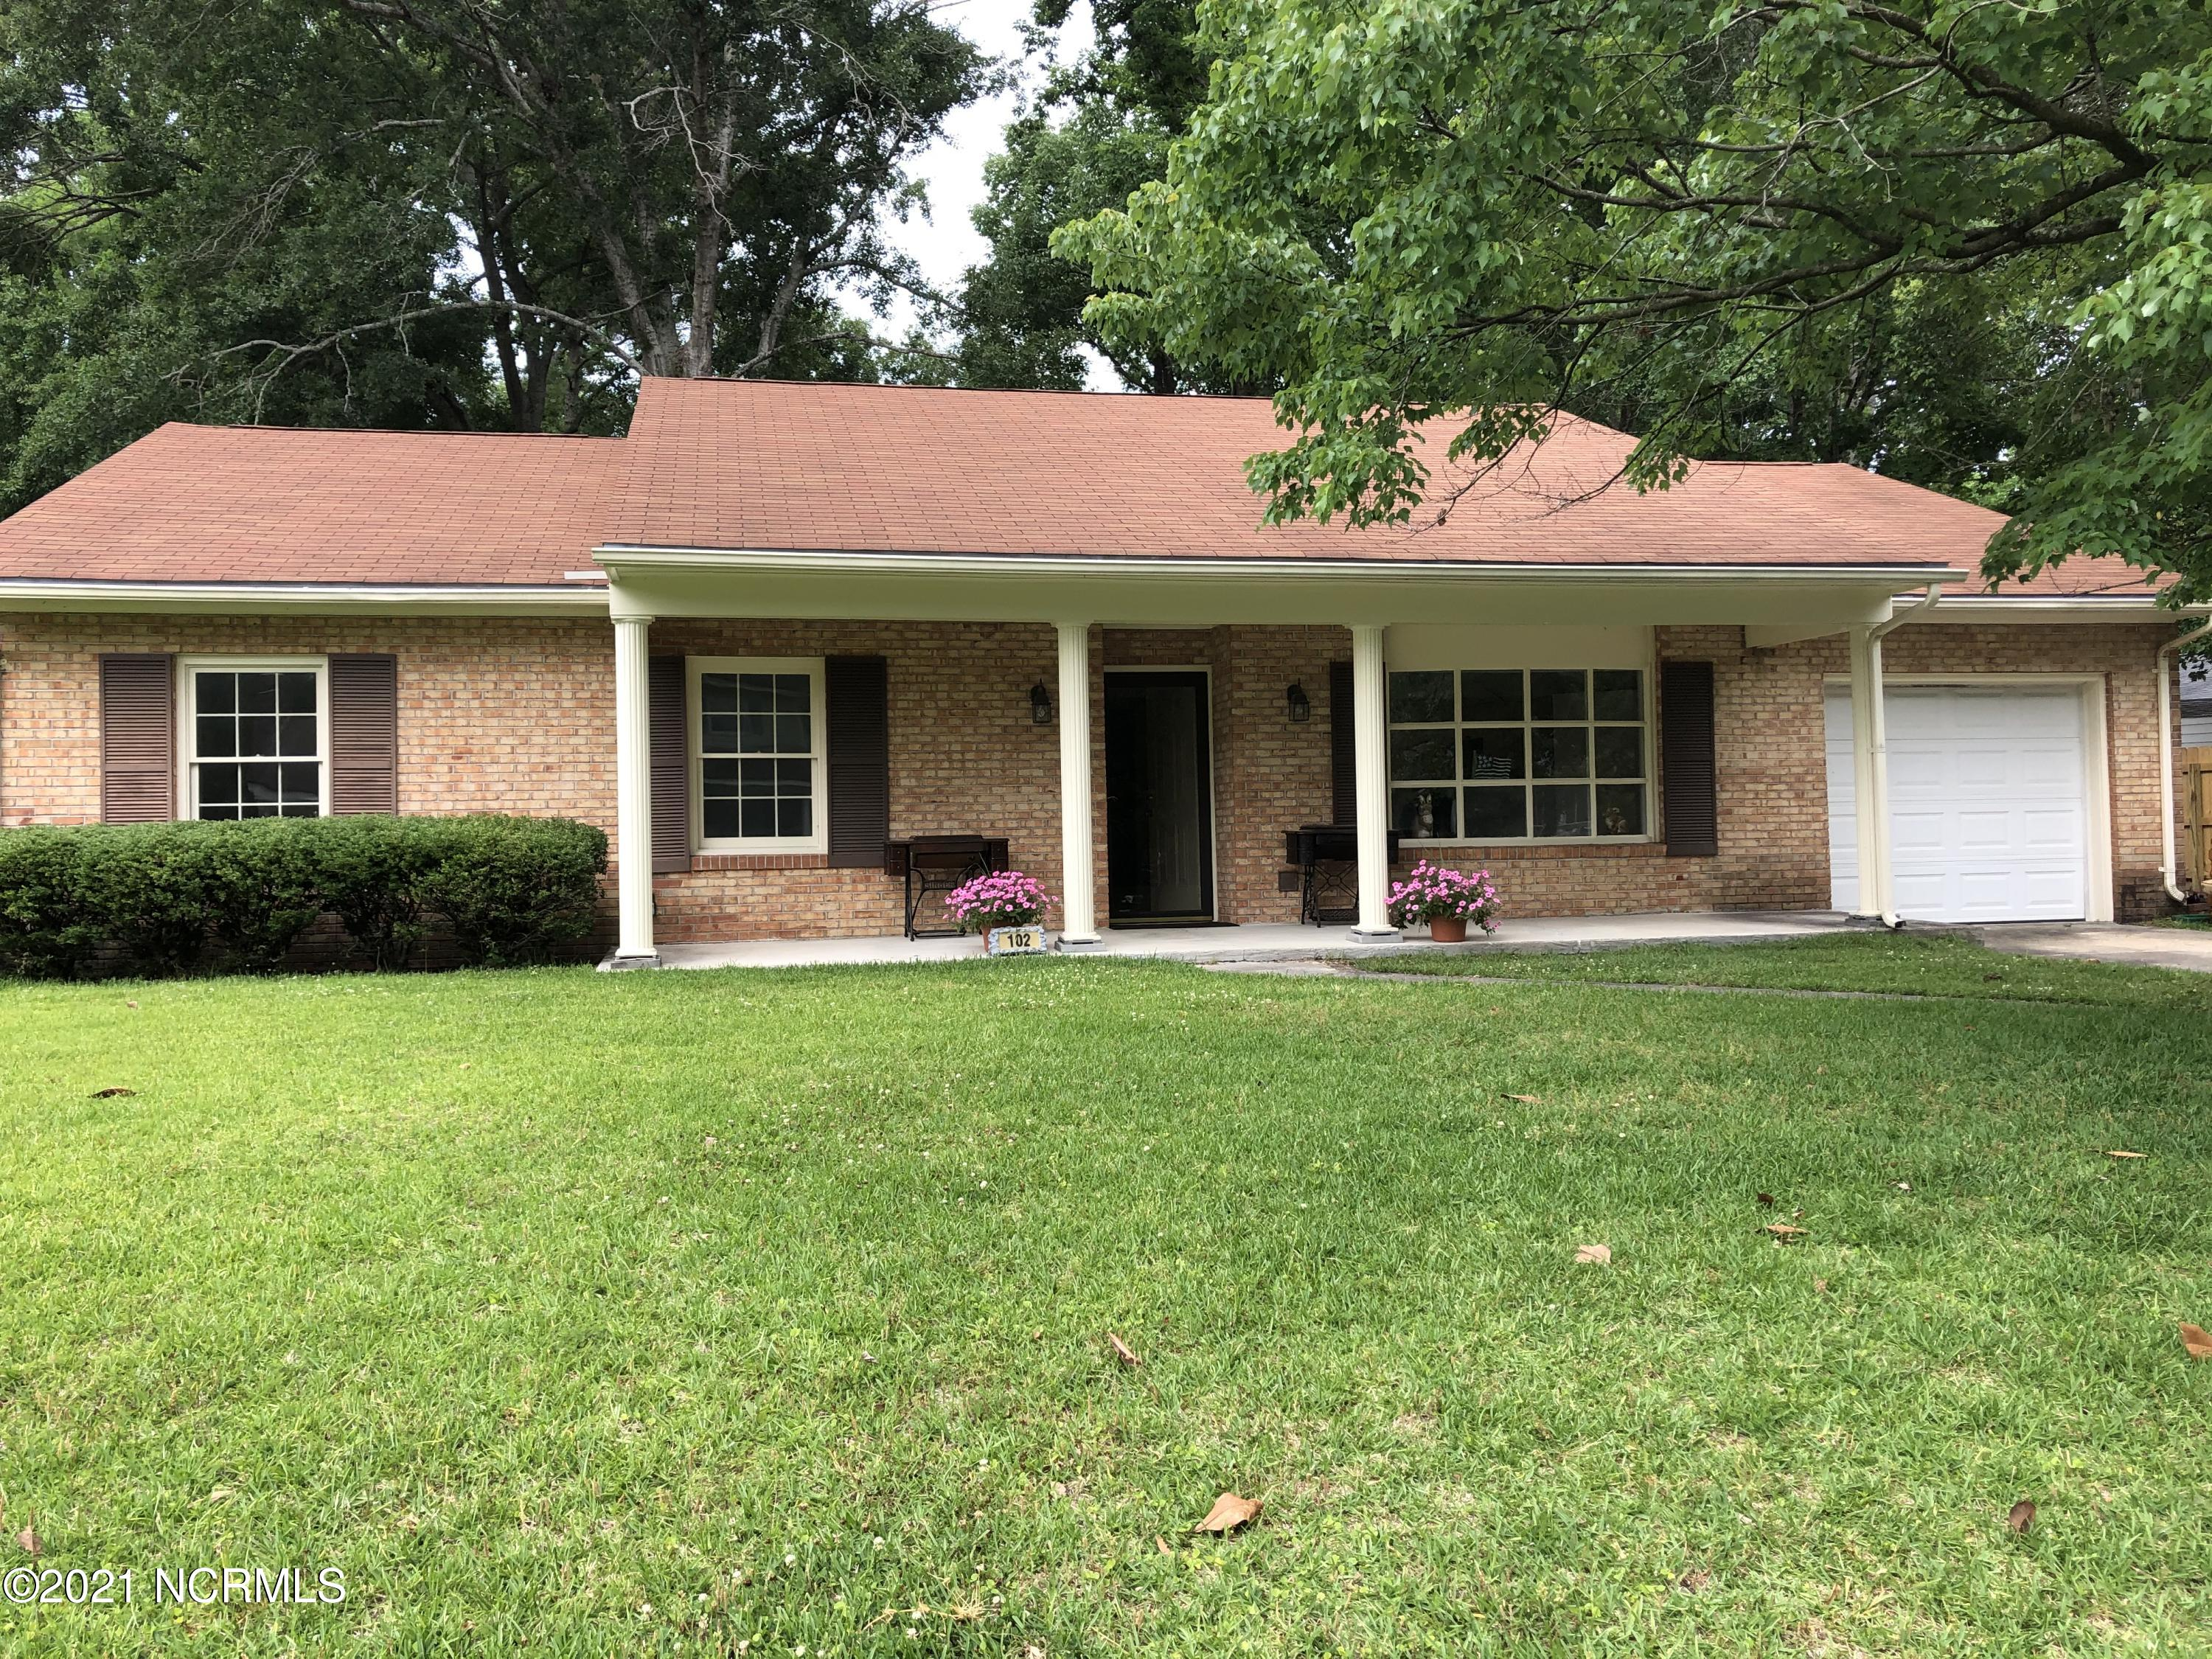 A beautifully updated 3 bed, 2 full bath brick ranch with a fireplace and an attached garage. This home is move - in ready, with new floors throughout, new kitchen cabinets, granite countertops, new vanities in the bathrooms, and newly painted. Enjoy the fenced in back yard in the shade of mature oaks, or in the comfort of the large 12' x 23' screened porch.